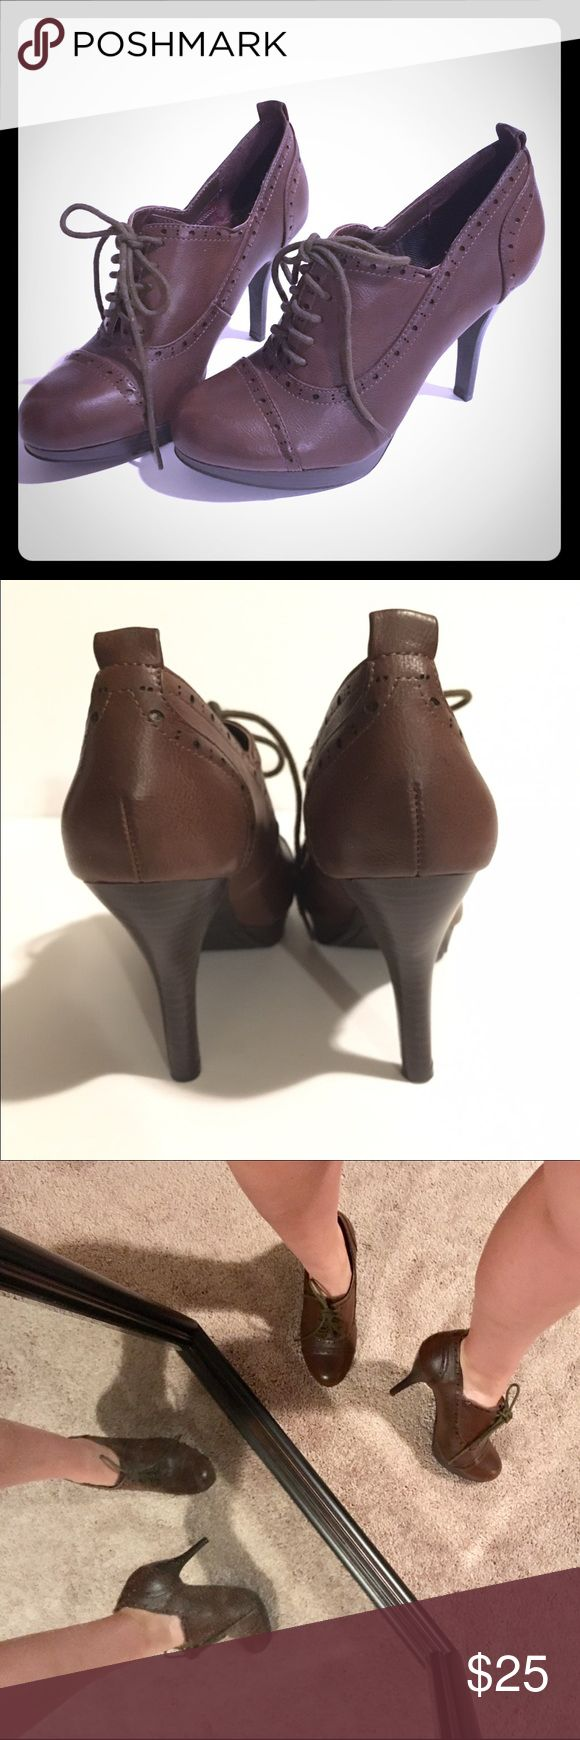 """Cute brown tie-up Fergie shoes Size 8. Brown lace up """"Fergalicious"""" heels. Never worn. Really cute on! Fergalicious Shoes Heels"""